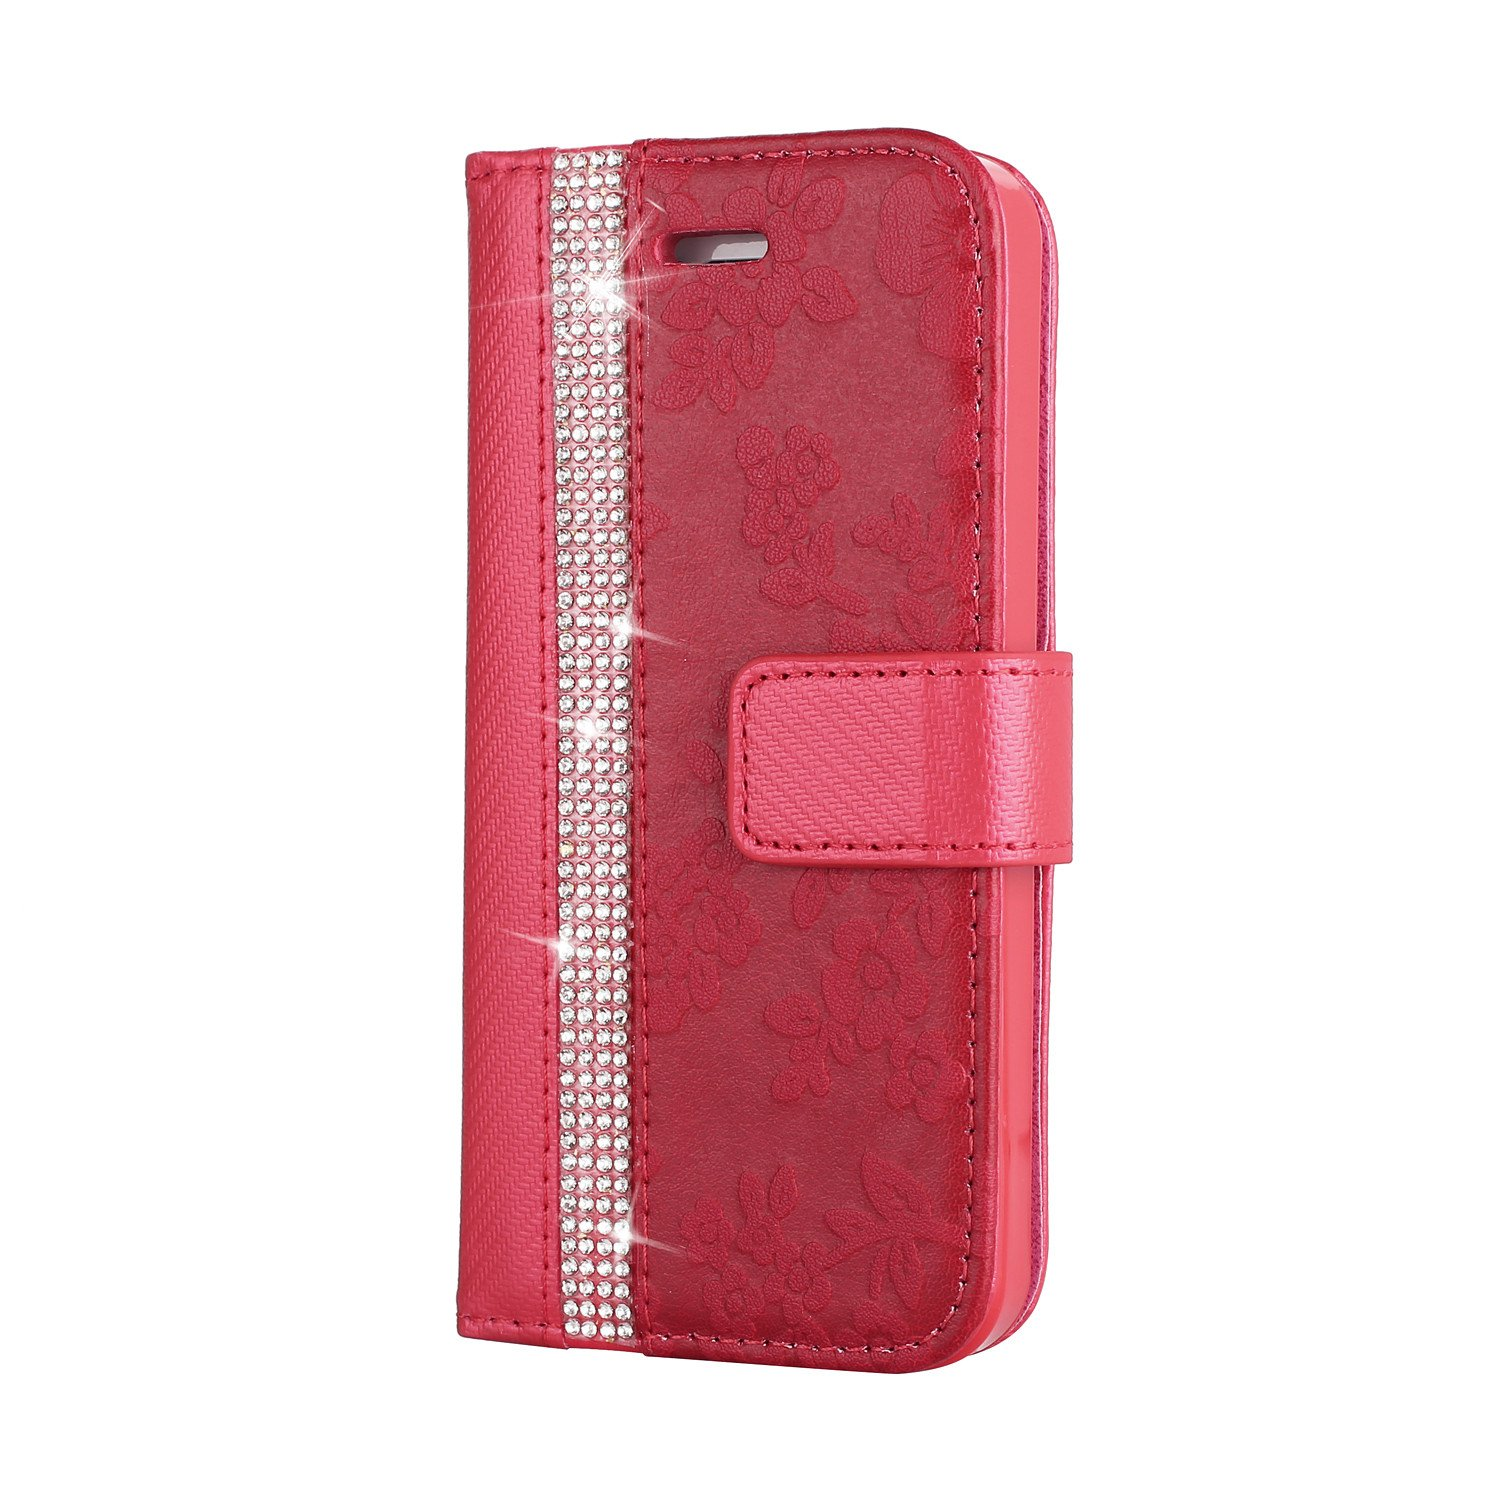 ZCXG iPhone 5 iPhone 5S iPhone SE Cover Red Diamond Glitter Case Flip Stand Cover Card Slots 3D Case Magnetic Closure Leather Wallet Cover Clear View Ultra Thin Case Shockproof Case Slim Fit